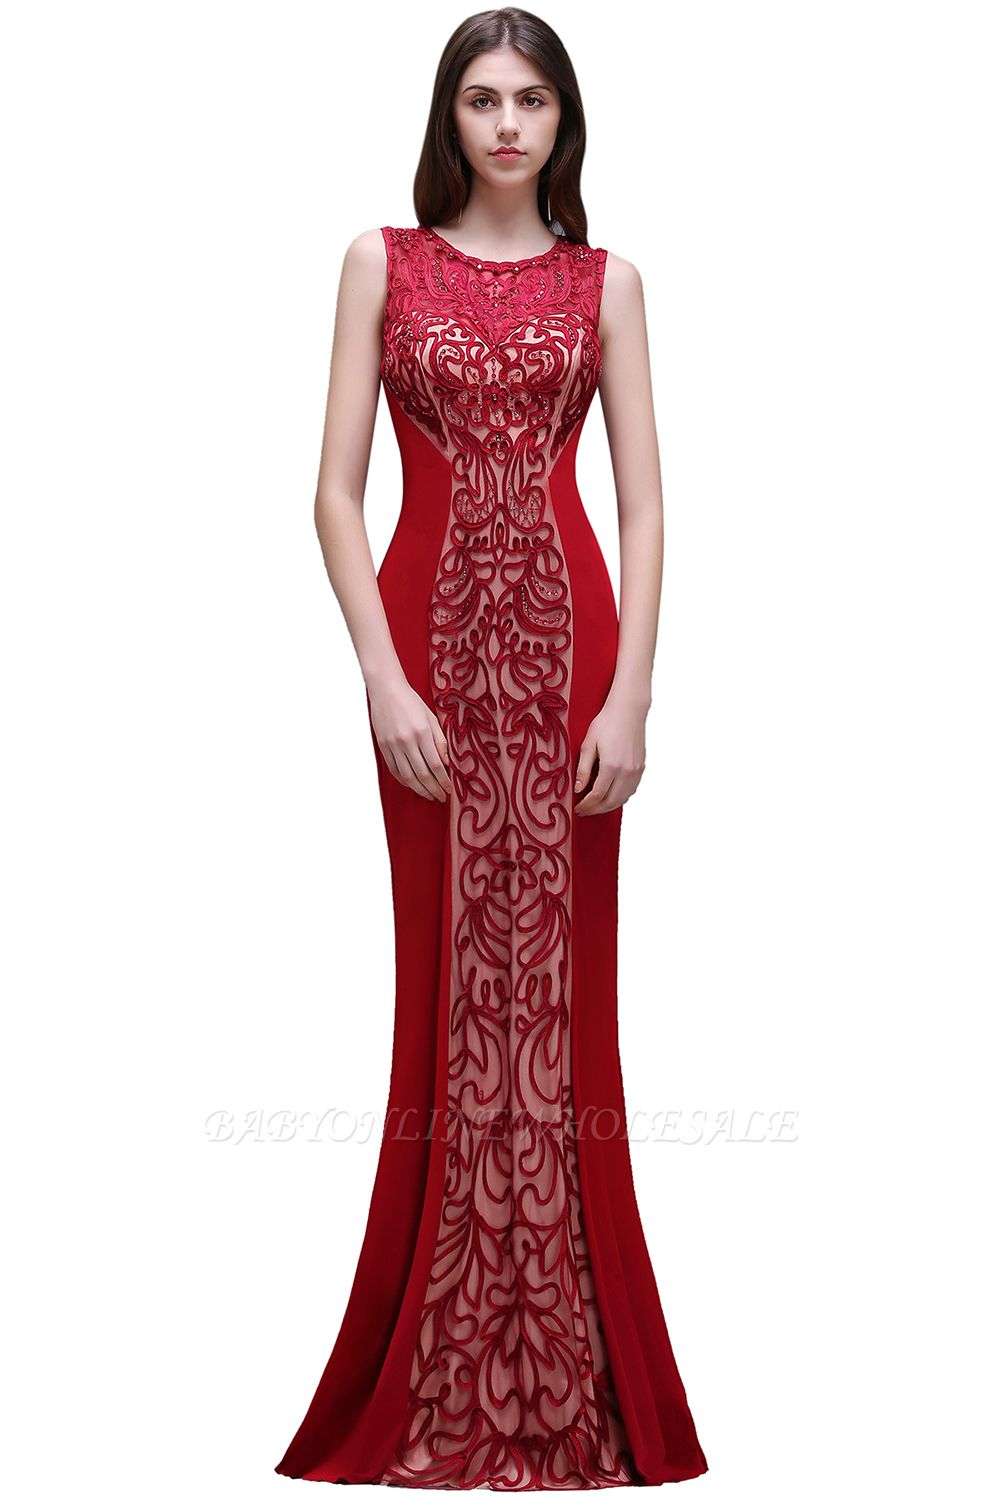 BEATRICE | Sheath Round Neck Floor-Length Burgundy Prom Dressses With Applique